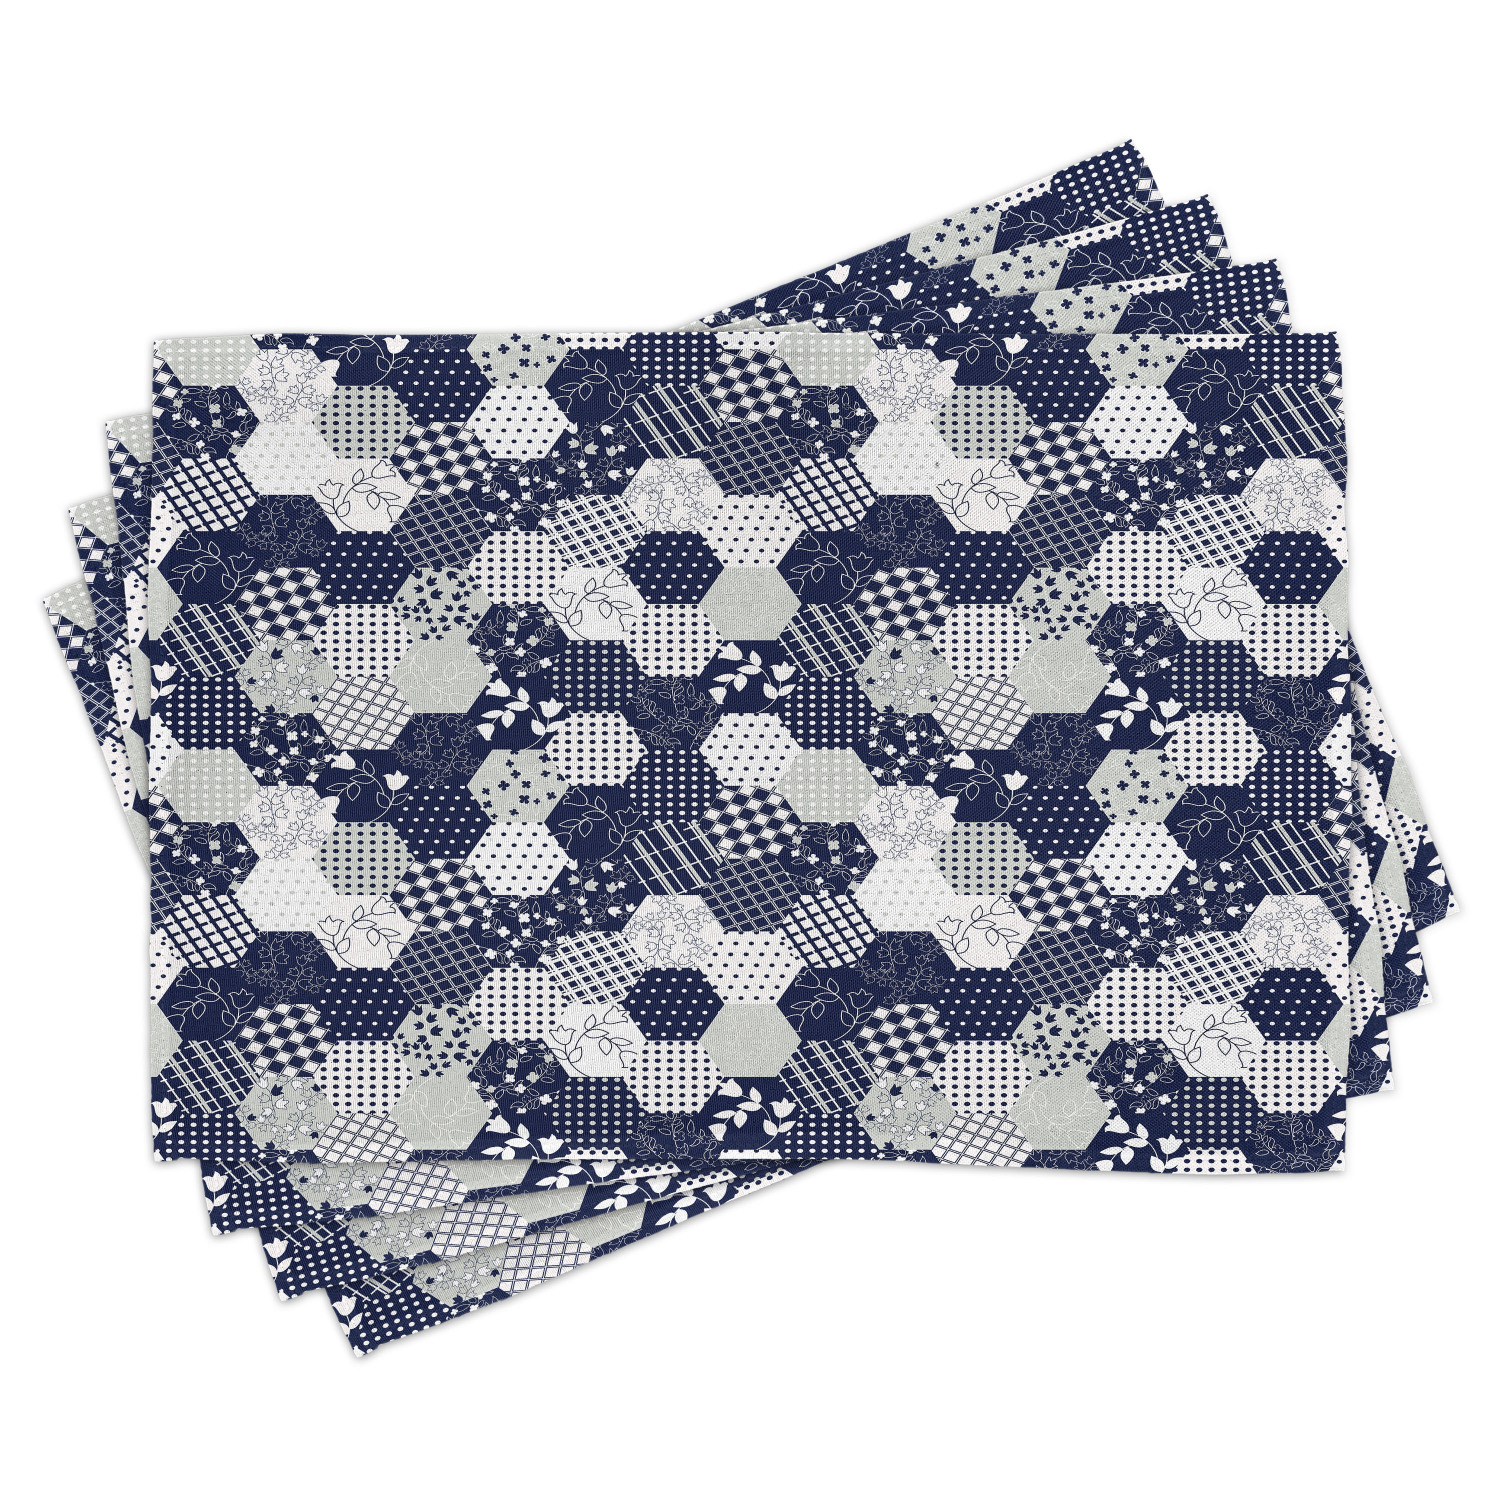 Cotton Fabric Placemats Set 4 Striped Small Leaves Pattern